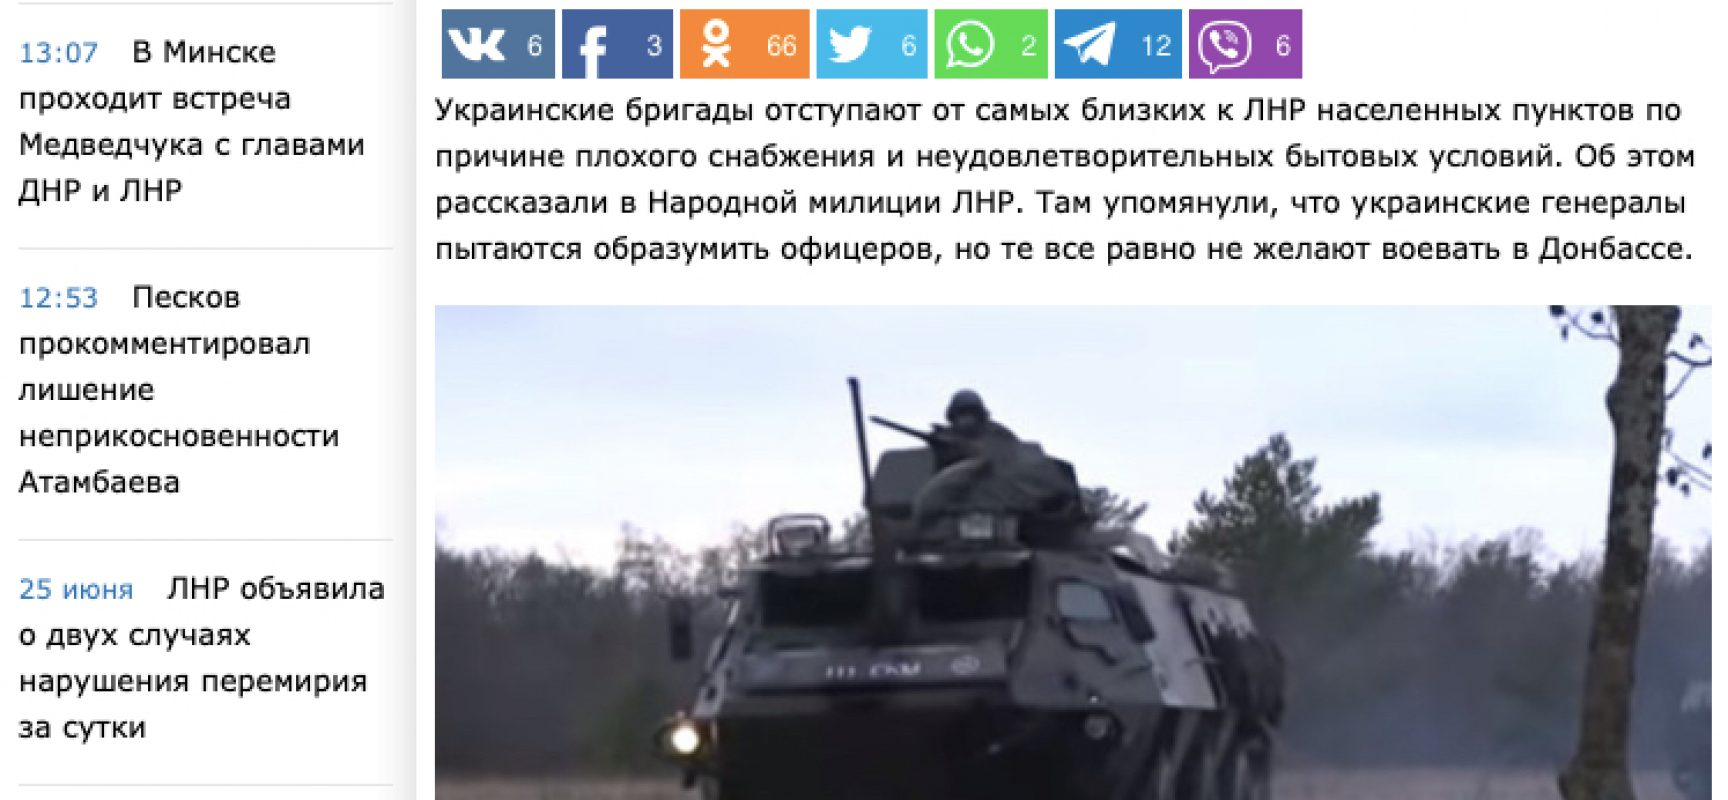 Fake: Ukrainian Army Pulling Back from Contact Line Because of Personnel and Equipment Shortages